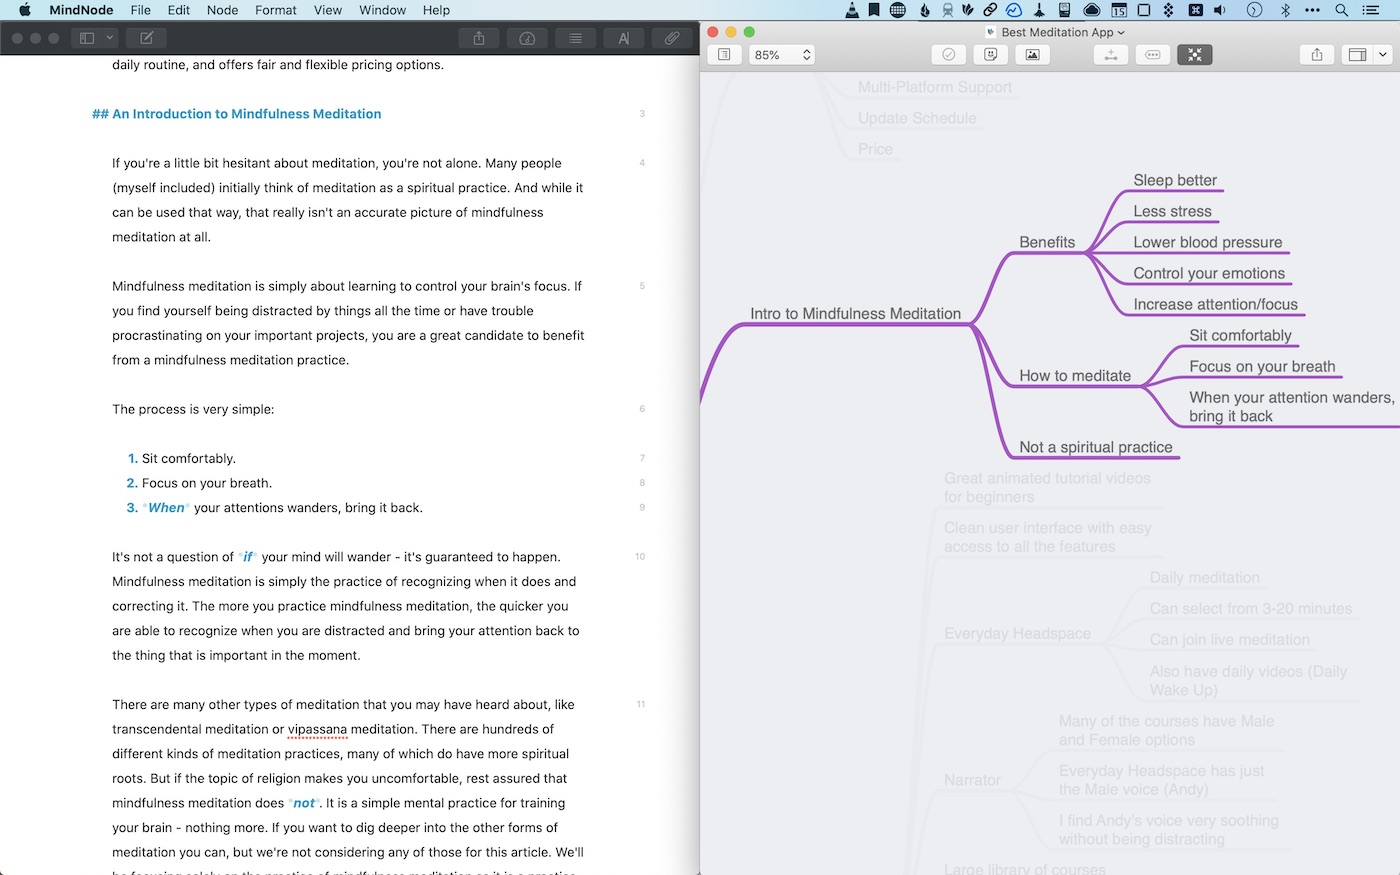 My writing setup with Ulysses and MindNode